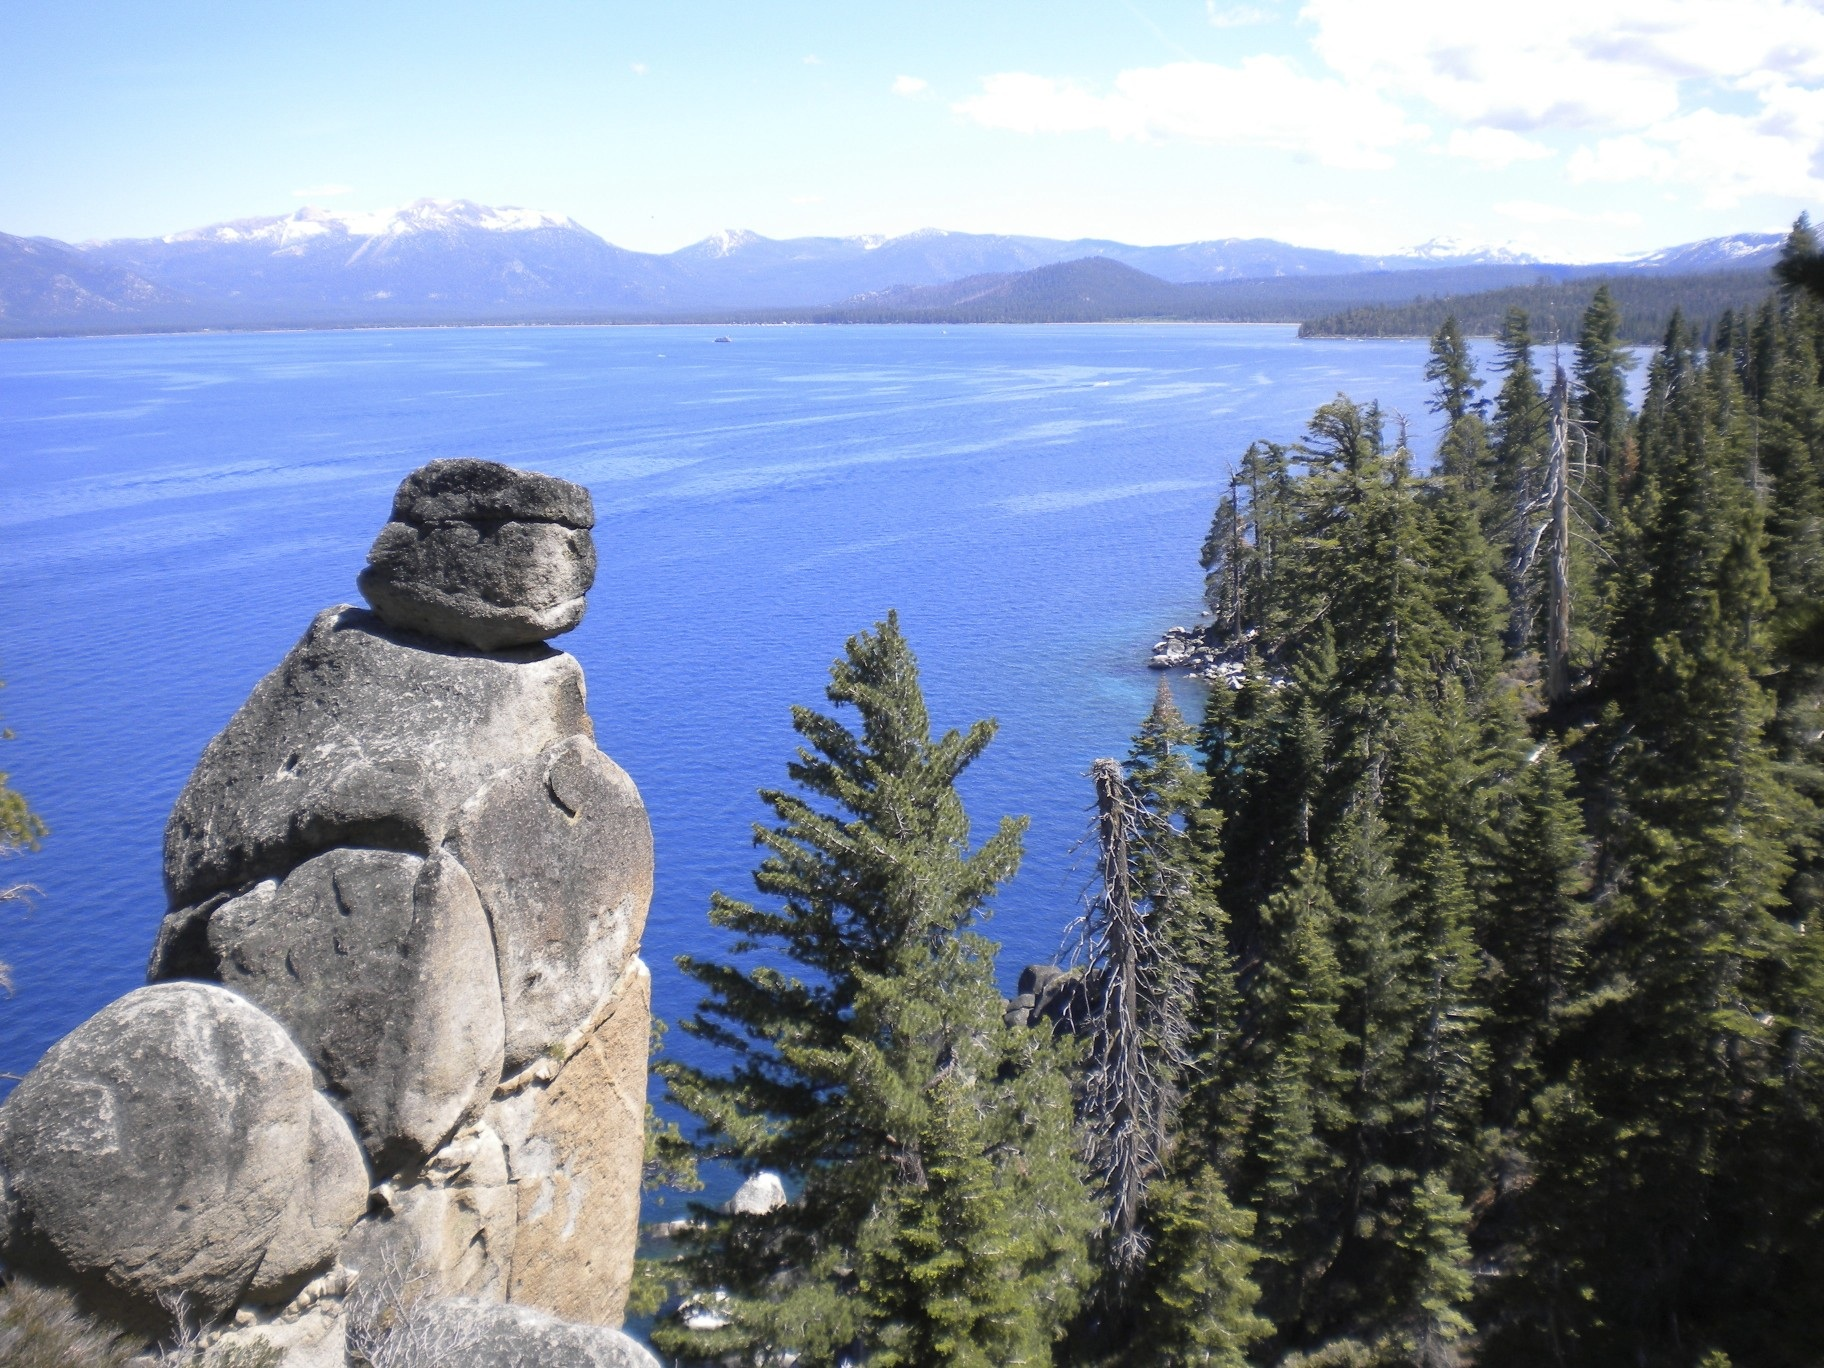 Kristen Kempt - Rubicon Trail 2010